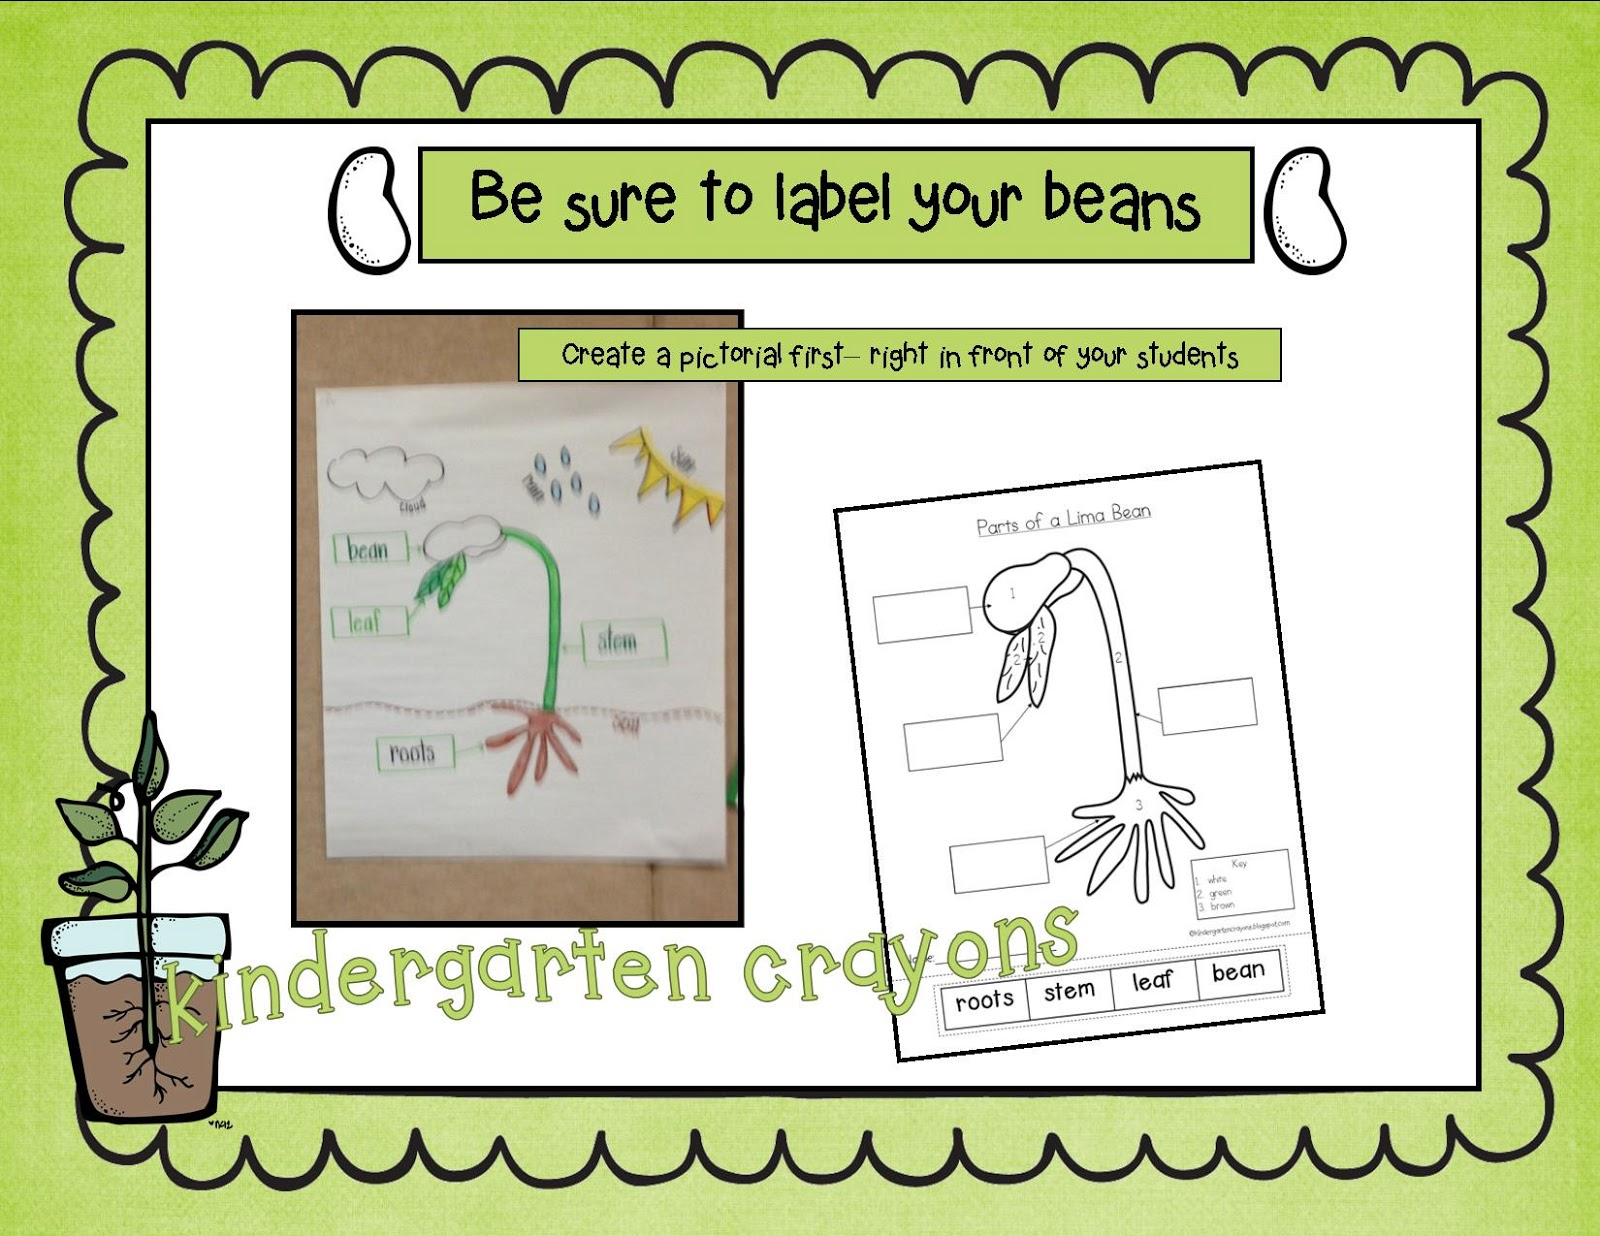 Lima bean diagram in color complete wiring diagrams kindergarten crayons please label your parts a lima bean rh kindergartencrayons blogspot com bean plant diagram bean seed diagram ccuart Image collections